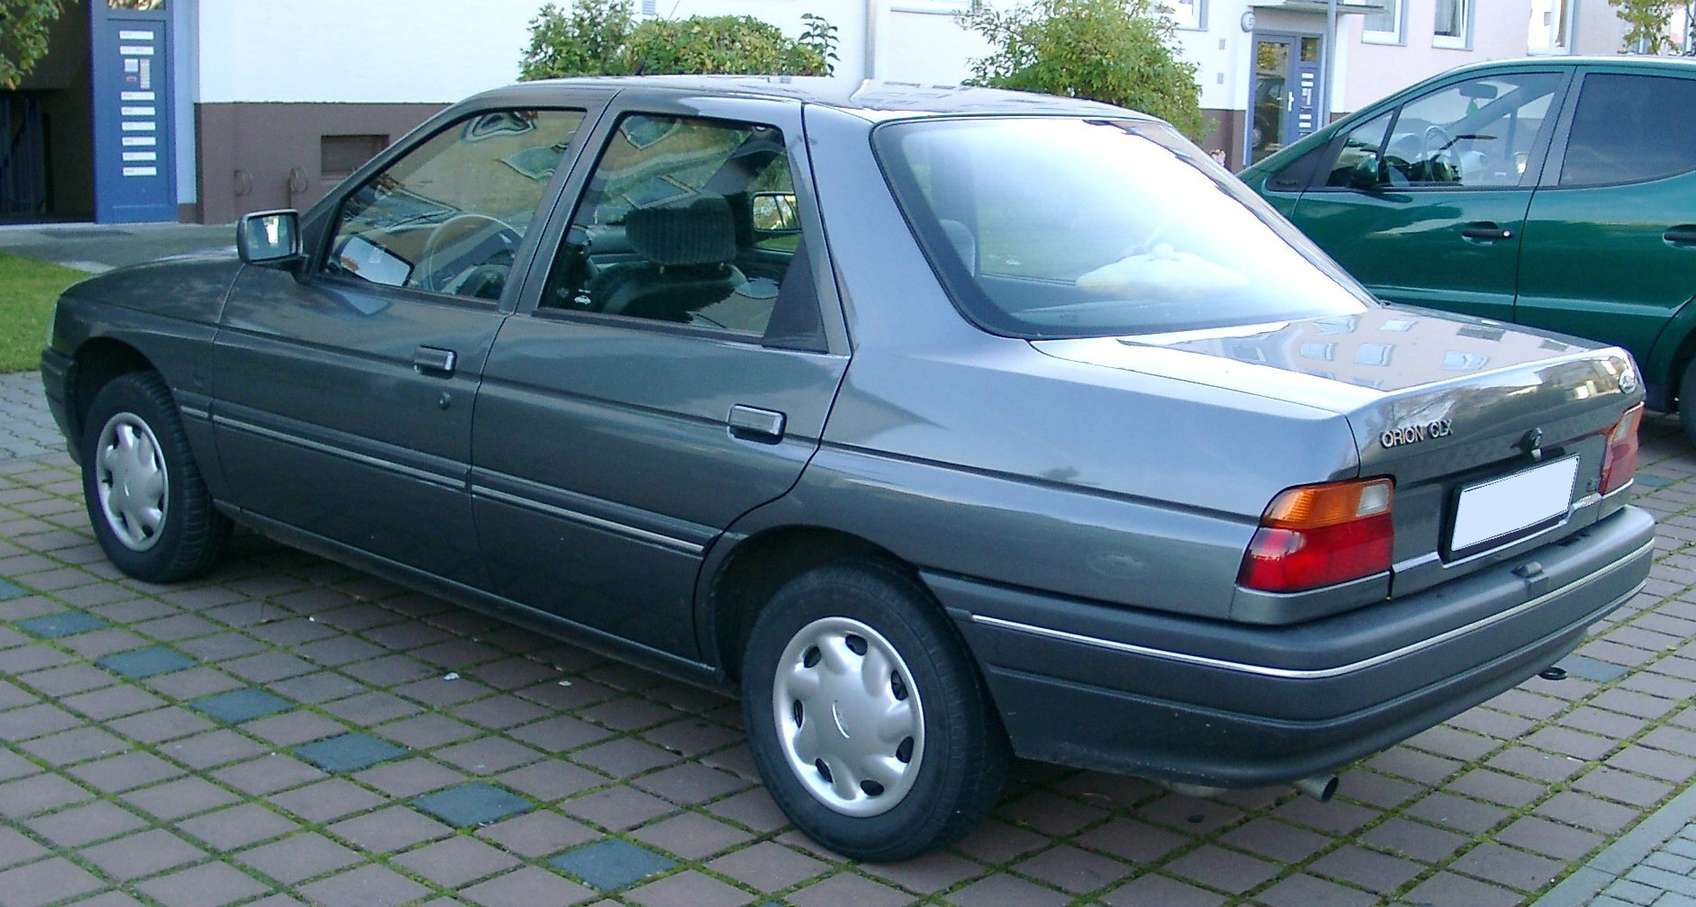 Ford Orion #7681236